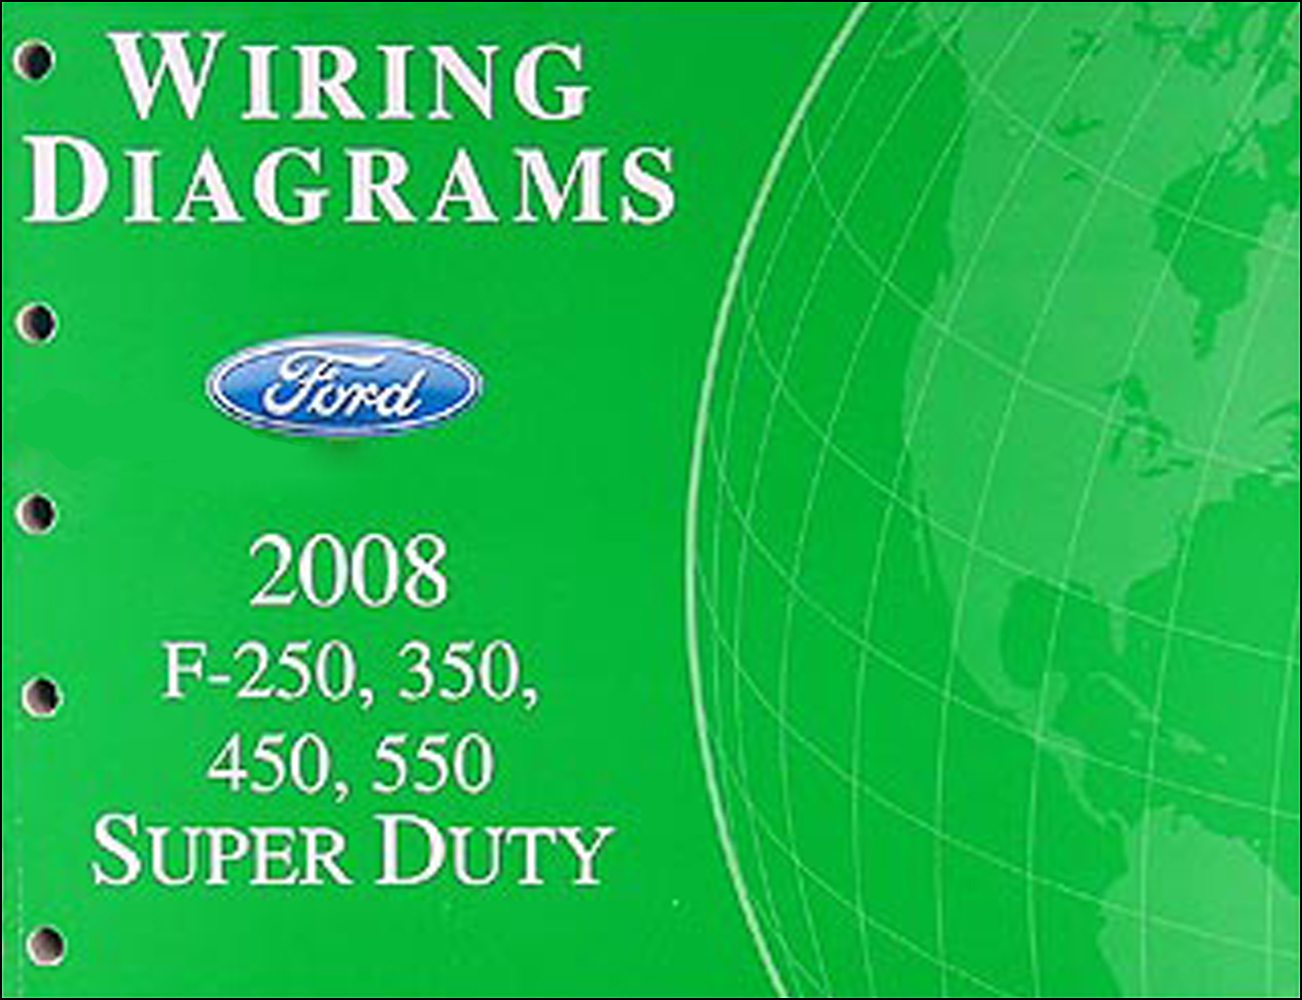 2008 Ford F-250 thru 550 Super Duty Wiring Diagram Manual ... F Super Duty Wiring Diagram on model a wiring diagram, k5 blazer wiring diagram, civic wiring diagram, fusion wiring diagram, crown victoria wiring diagram, mustang wiring diagram, f150 wiring diagram, taurus wiring diagram, bronco wiring diagram, windstar wiring diagram, f250 super duty wiring diagram,